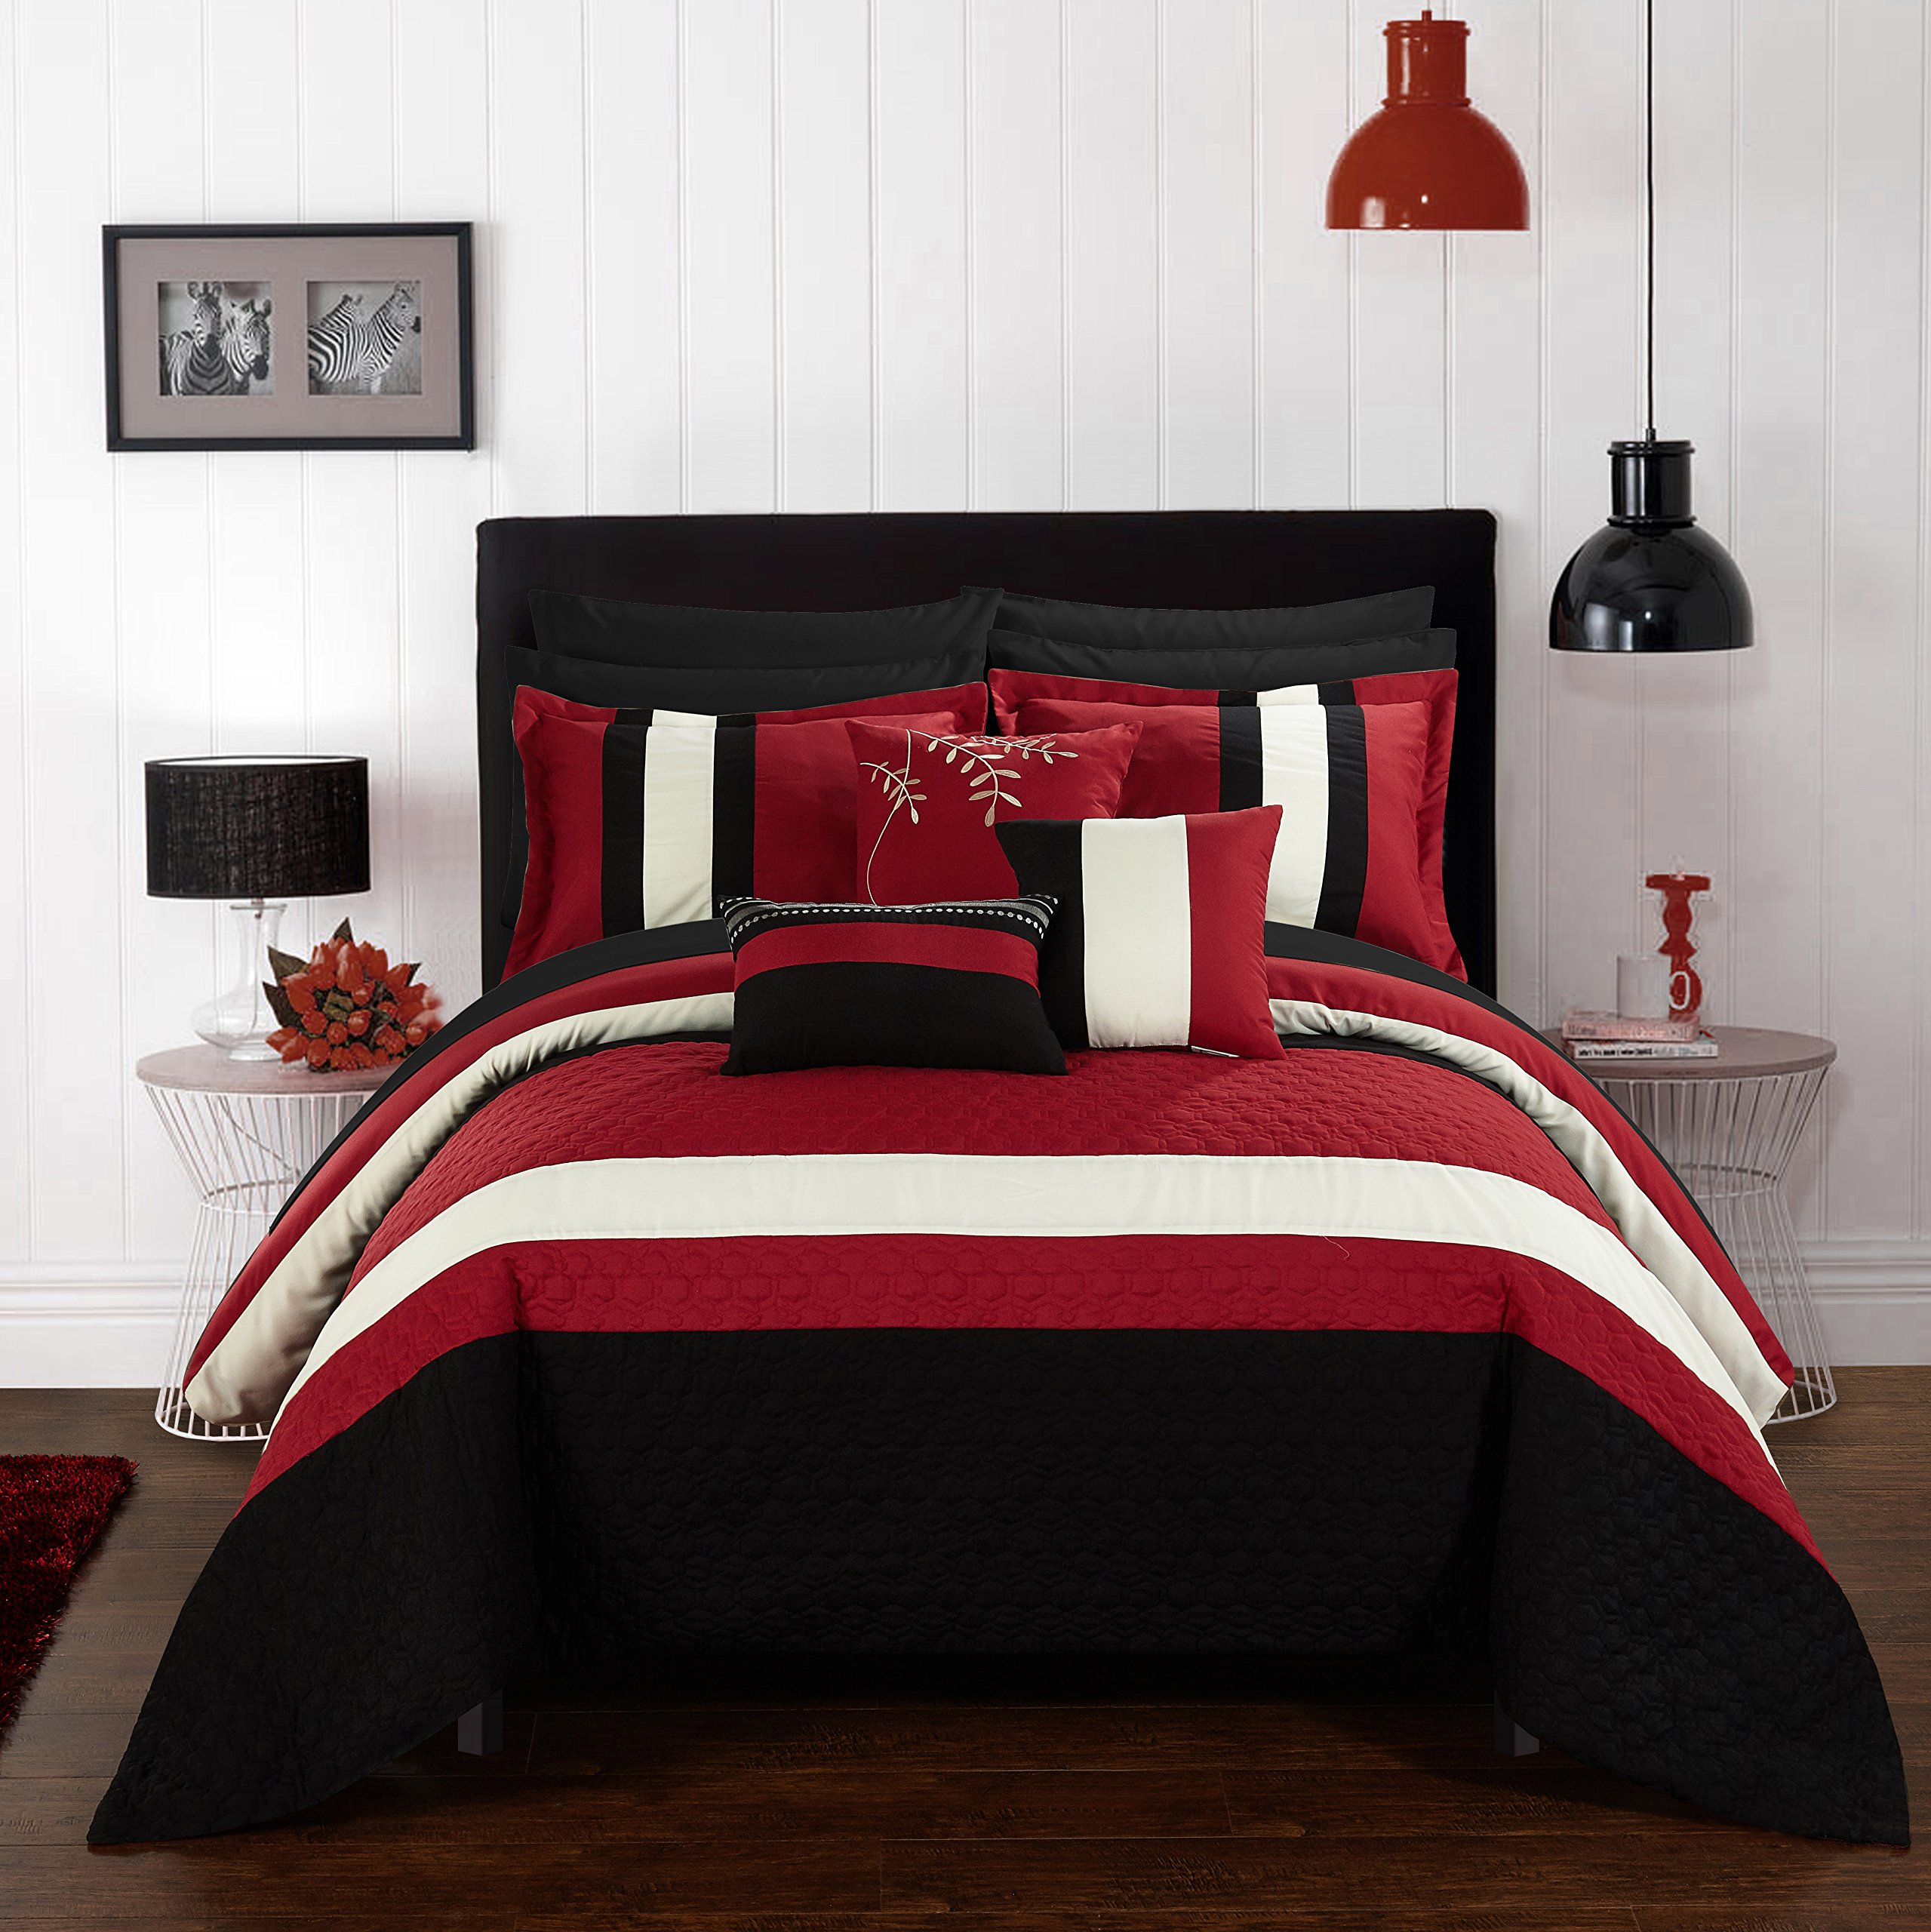 Chic Home CS2547-AN Pueblo 10Piece Pueblo Complete Bedroom Set with Octagon Embroidery Color Block Pattern. Queen Bed In A Bag Comforter Set Red with Sheet Set,Red,Queen by Chic Home